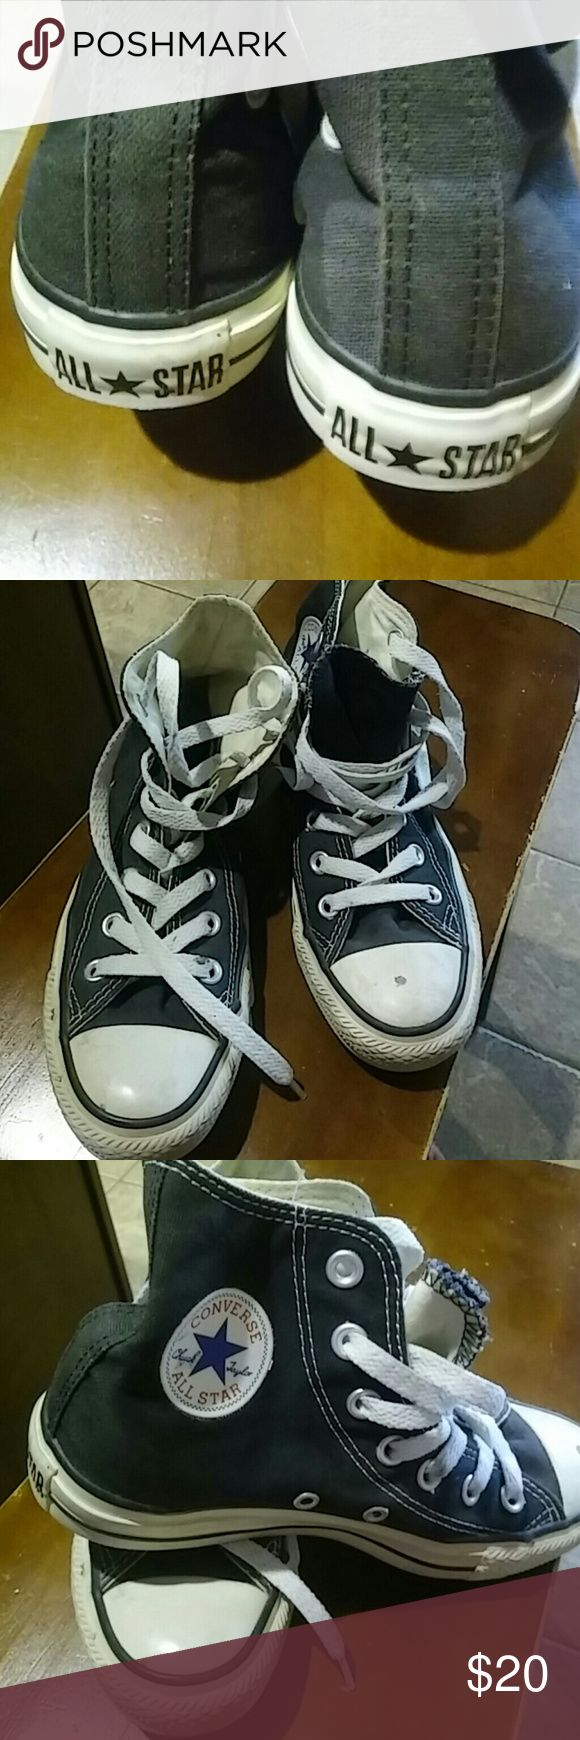 Converse All ?? Star Chuck Taylor All Star  Black. In good condition. White parts can be easily cleaned up. Original before sold to Nike company. Converse Shoes Sneakers